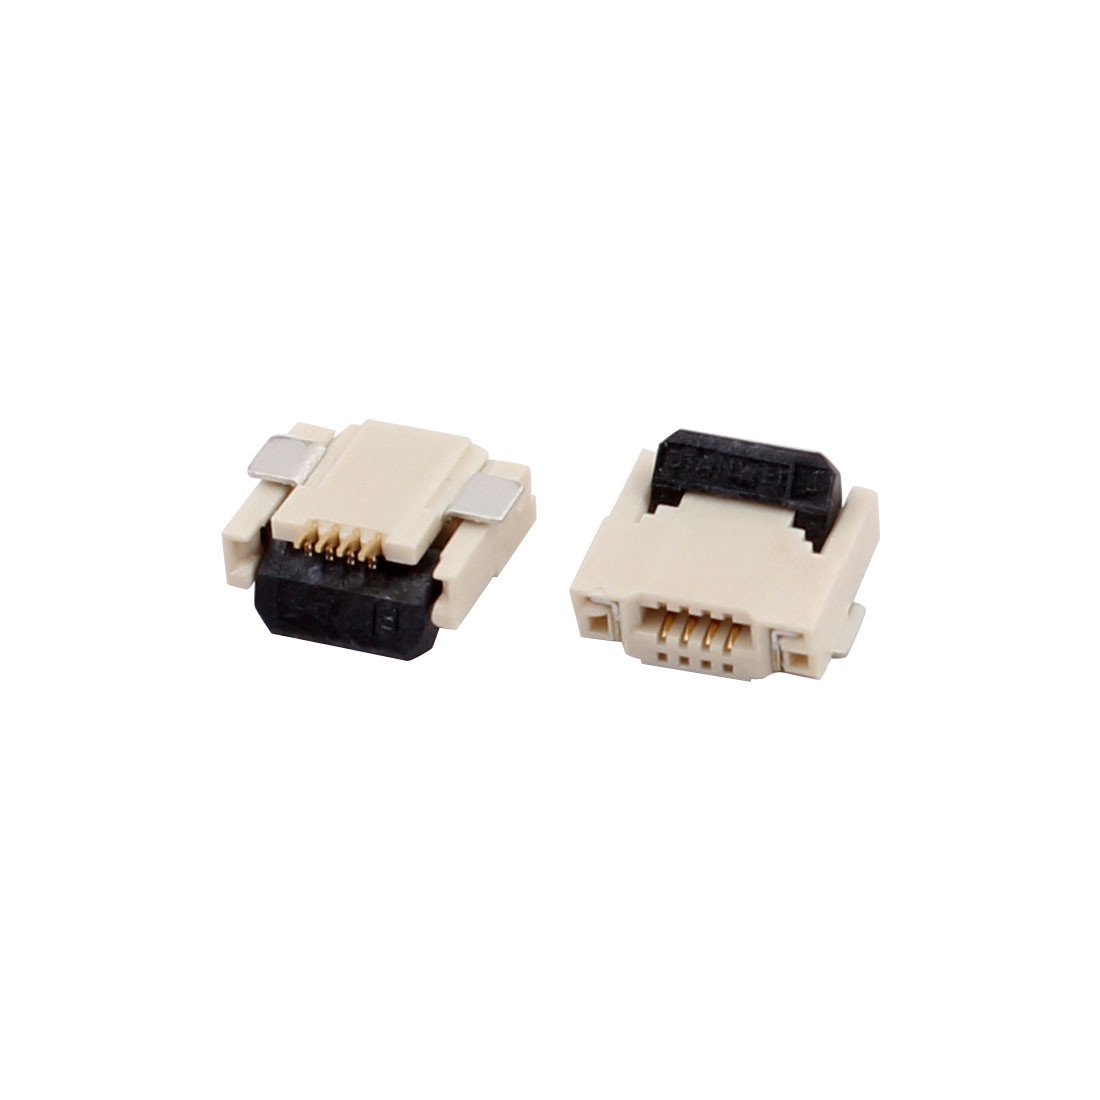 2Pcs FPC 4P 0.5mm Pitch 2mm Thick Double Sides Contact Flat Connector Socket